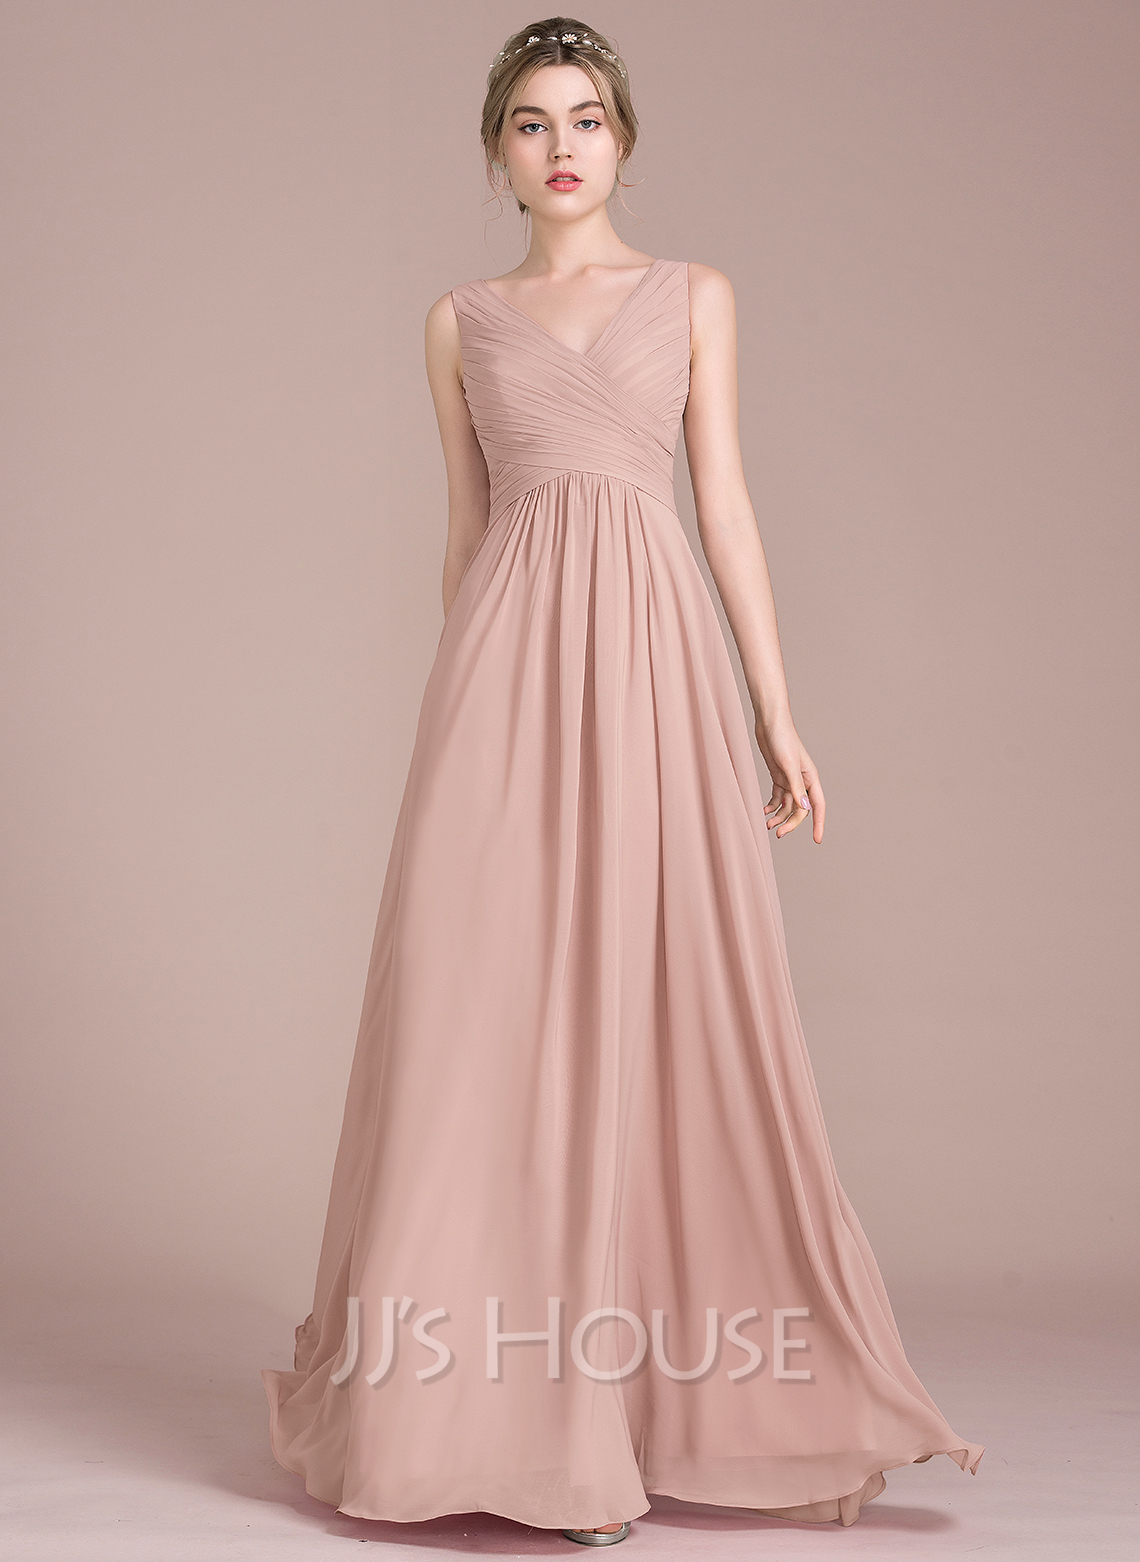 A lineprincess v neck floor length chiffon bridesmaid dress with a lineprincess v neck floor length chiffon bridesmaid dress with ruffle loading zoom ombrellifo Gallery